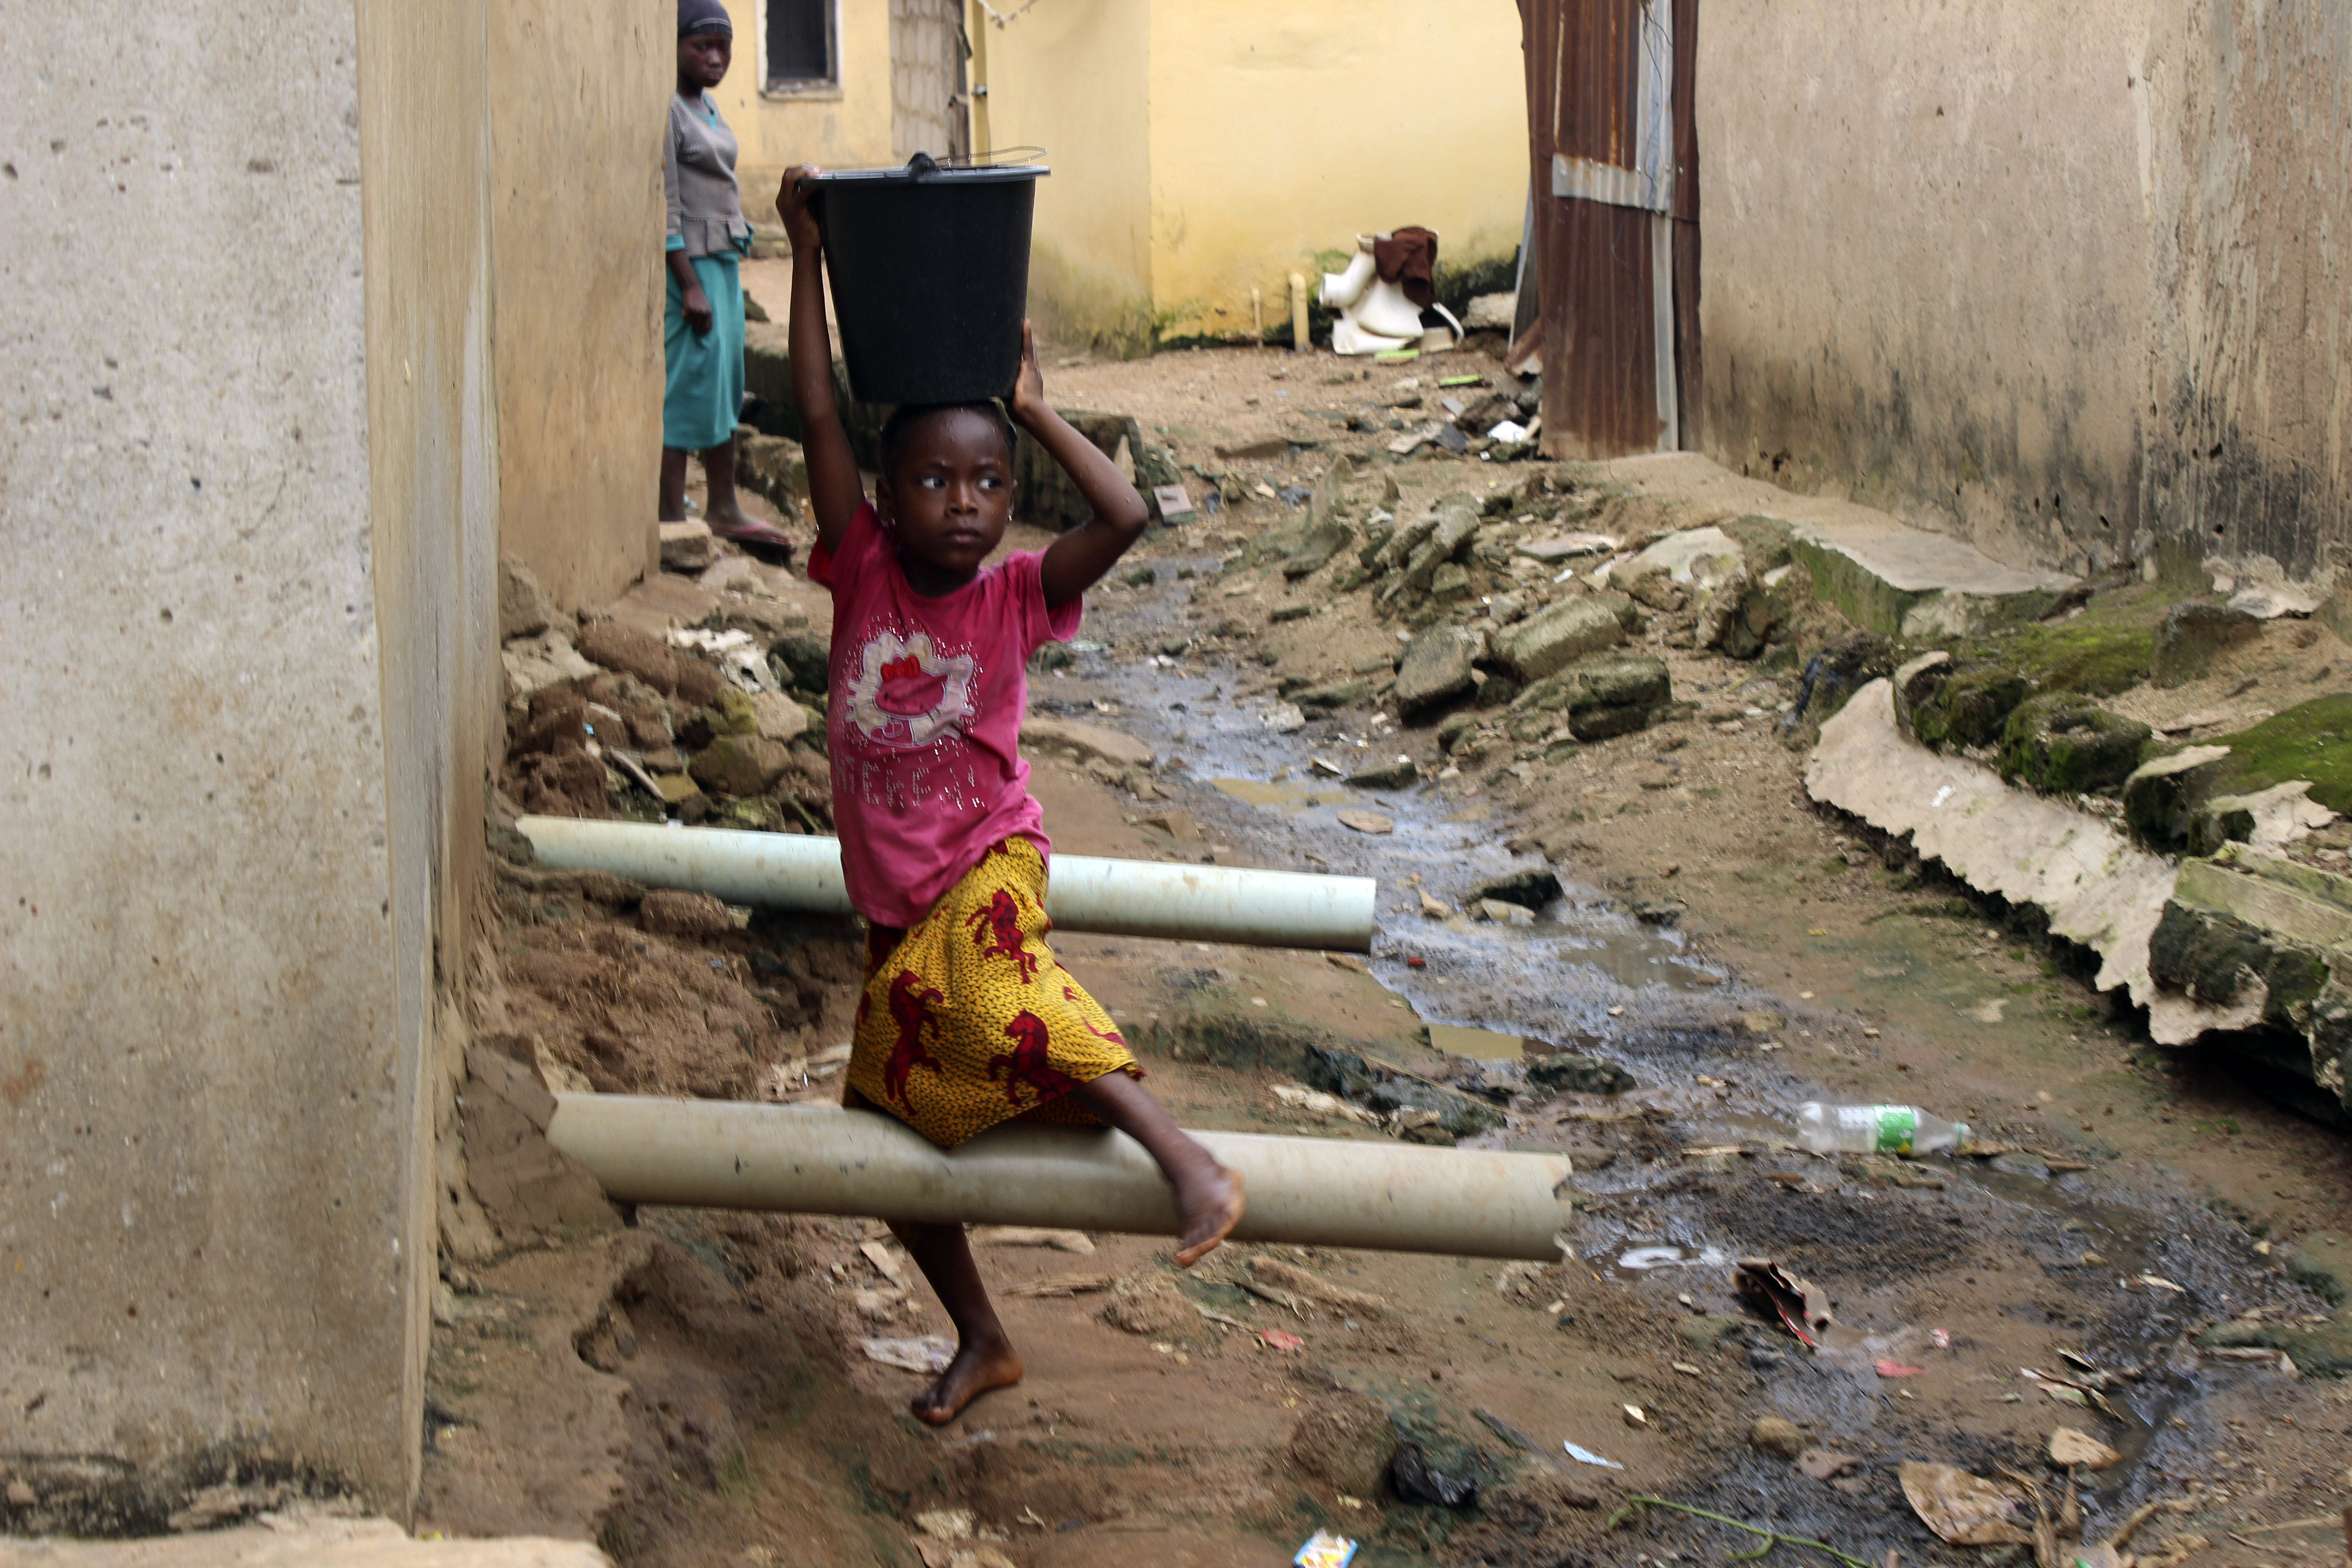 A girl carrying water on her head walks past sewage around houses in Abuja, Nigeria. The country is facing one of its worst cholera outbreaks in years, with more than 2,300 people dead from suspected cases as the West African nation struggles to deal with multiple disease outbreaks.